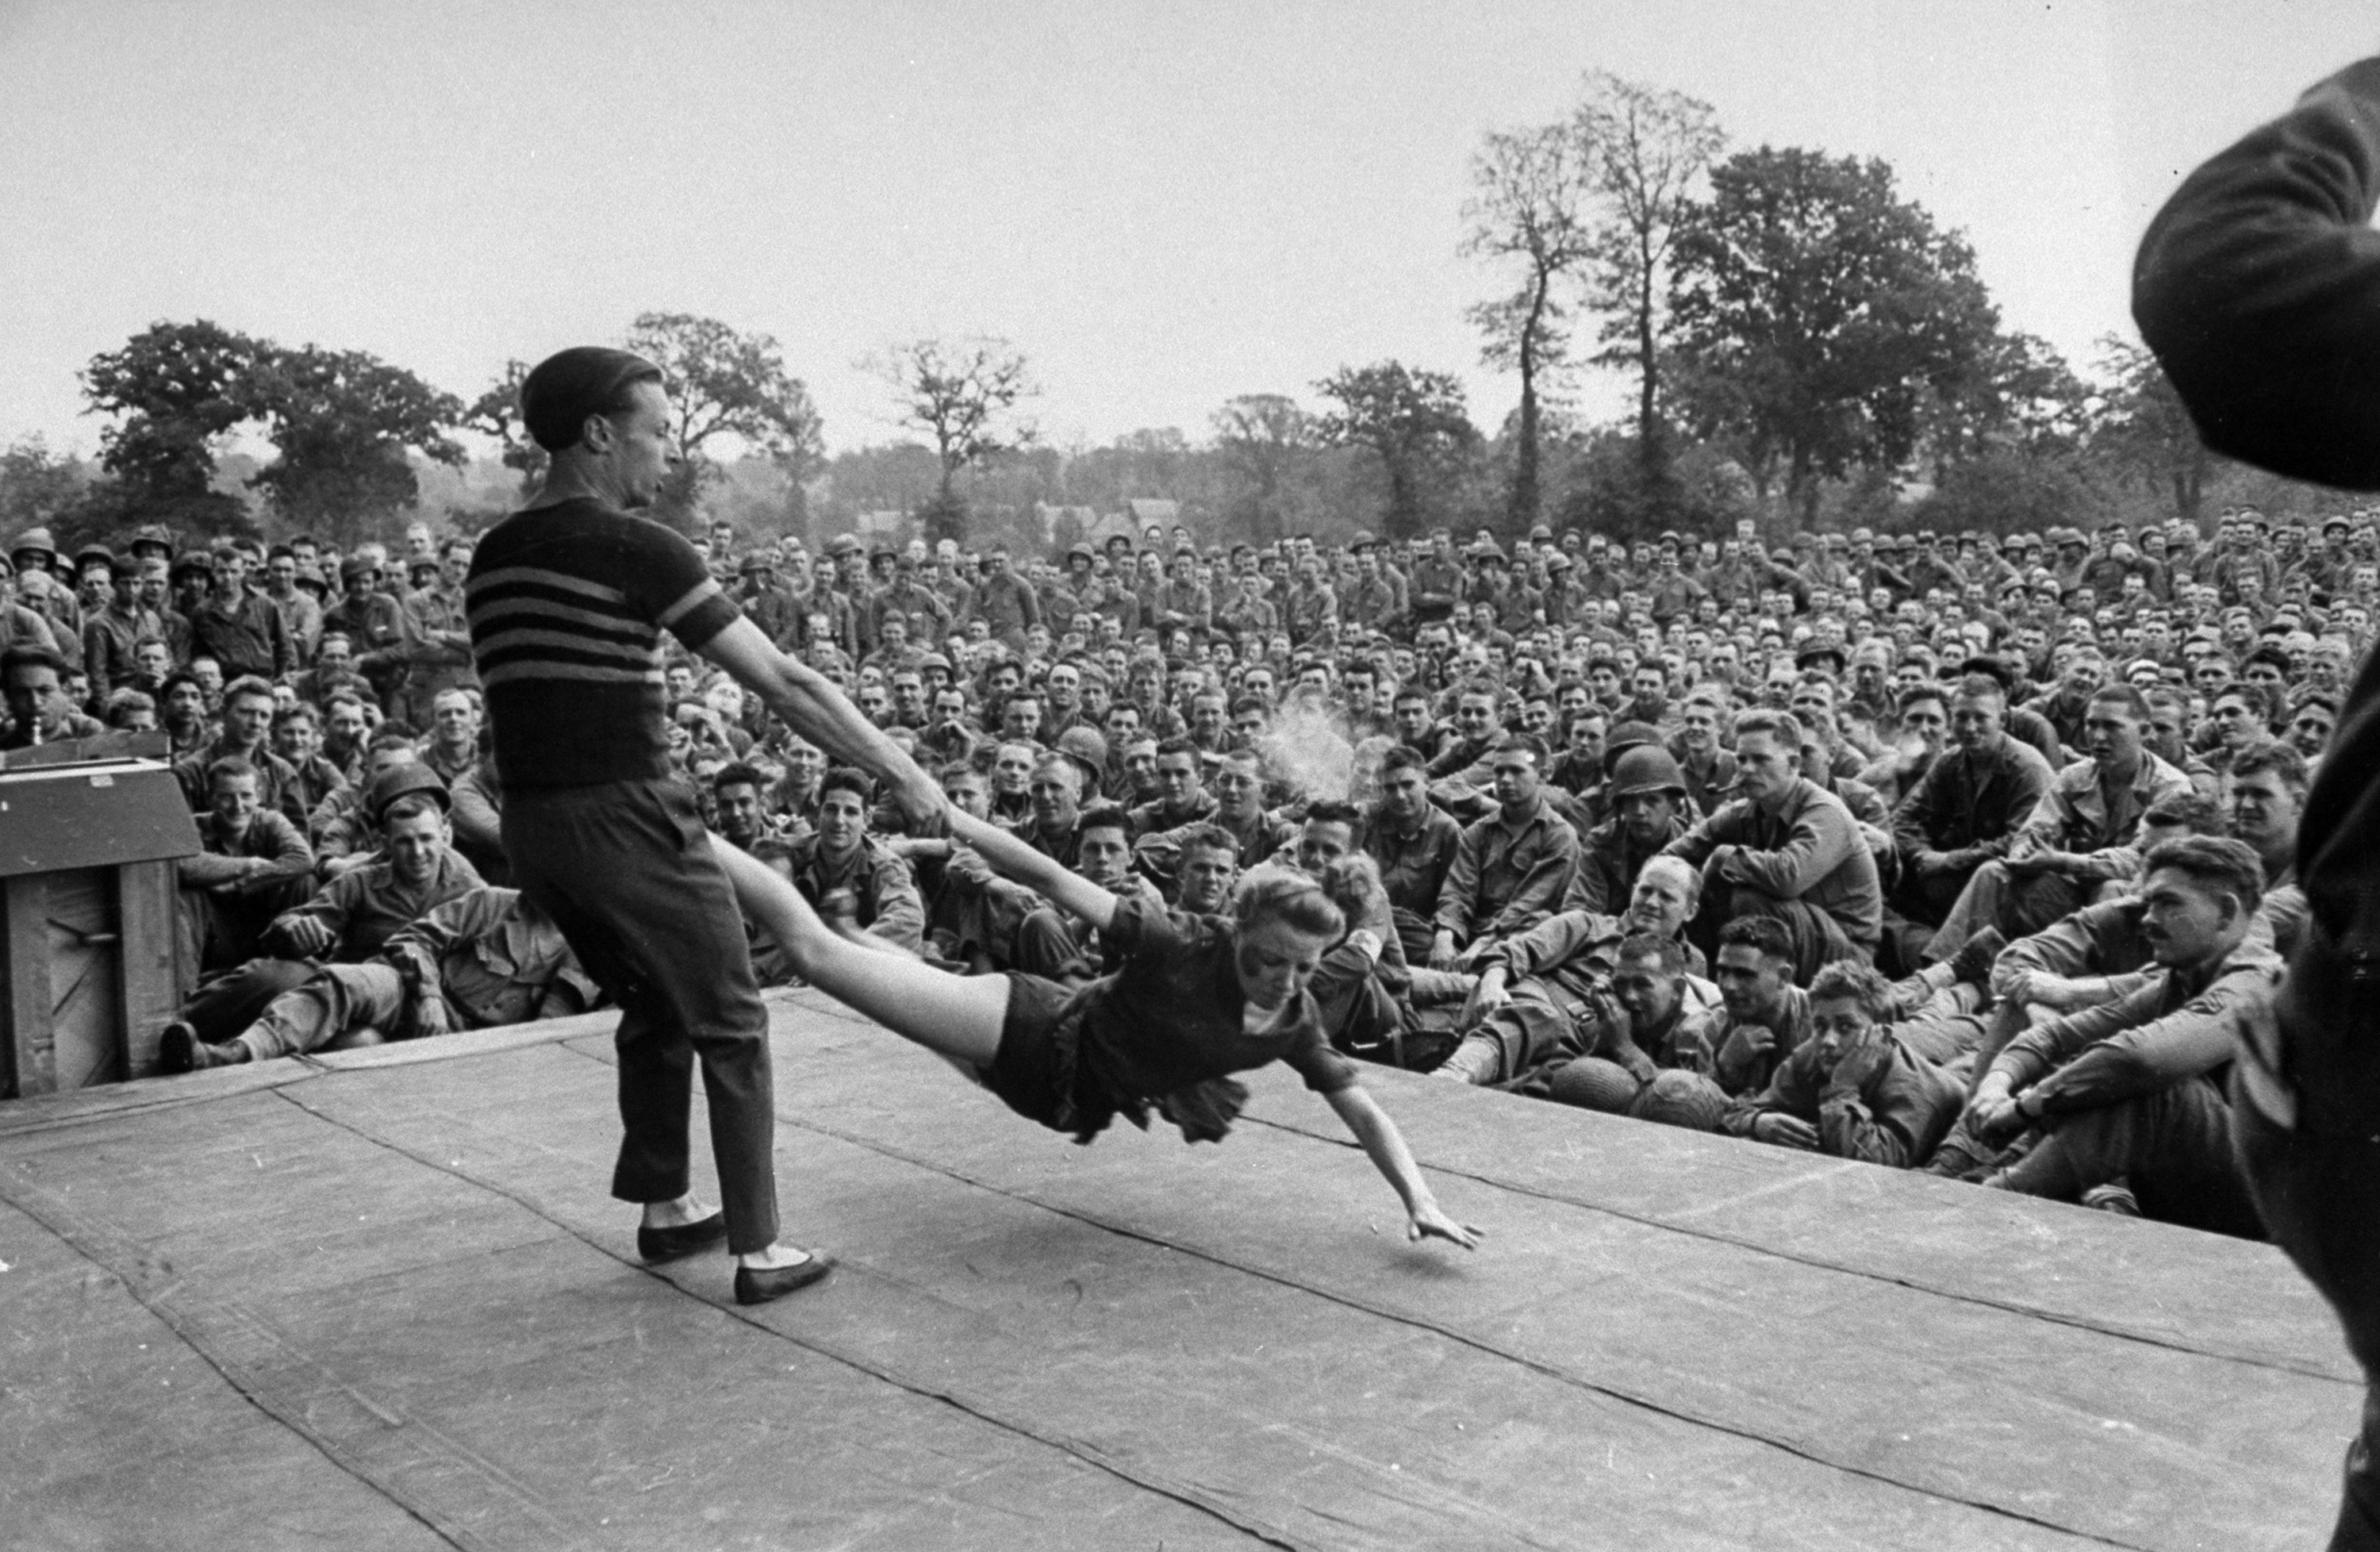 Caption from LIFE:  Dancer skims stage dangerously as she is swung by male partner. The men at show were from 20th Division. Its commanding general, Major Gen. Charles H. Gerhardt, also attended.